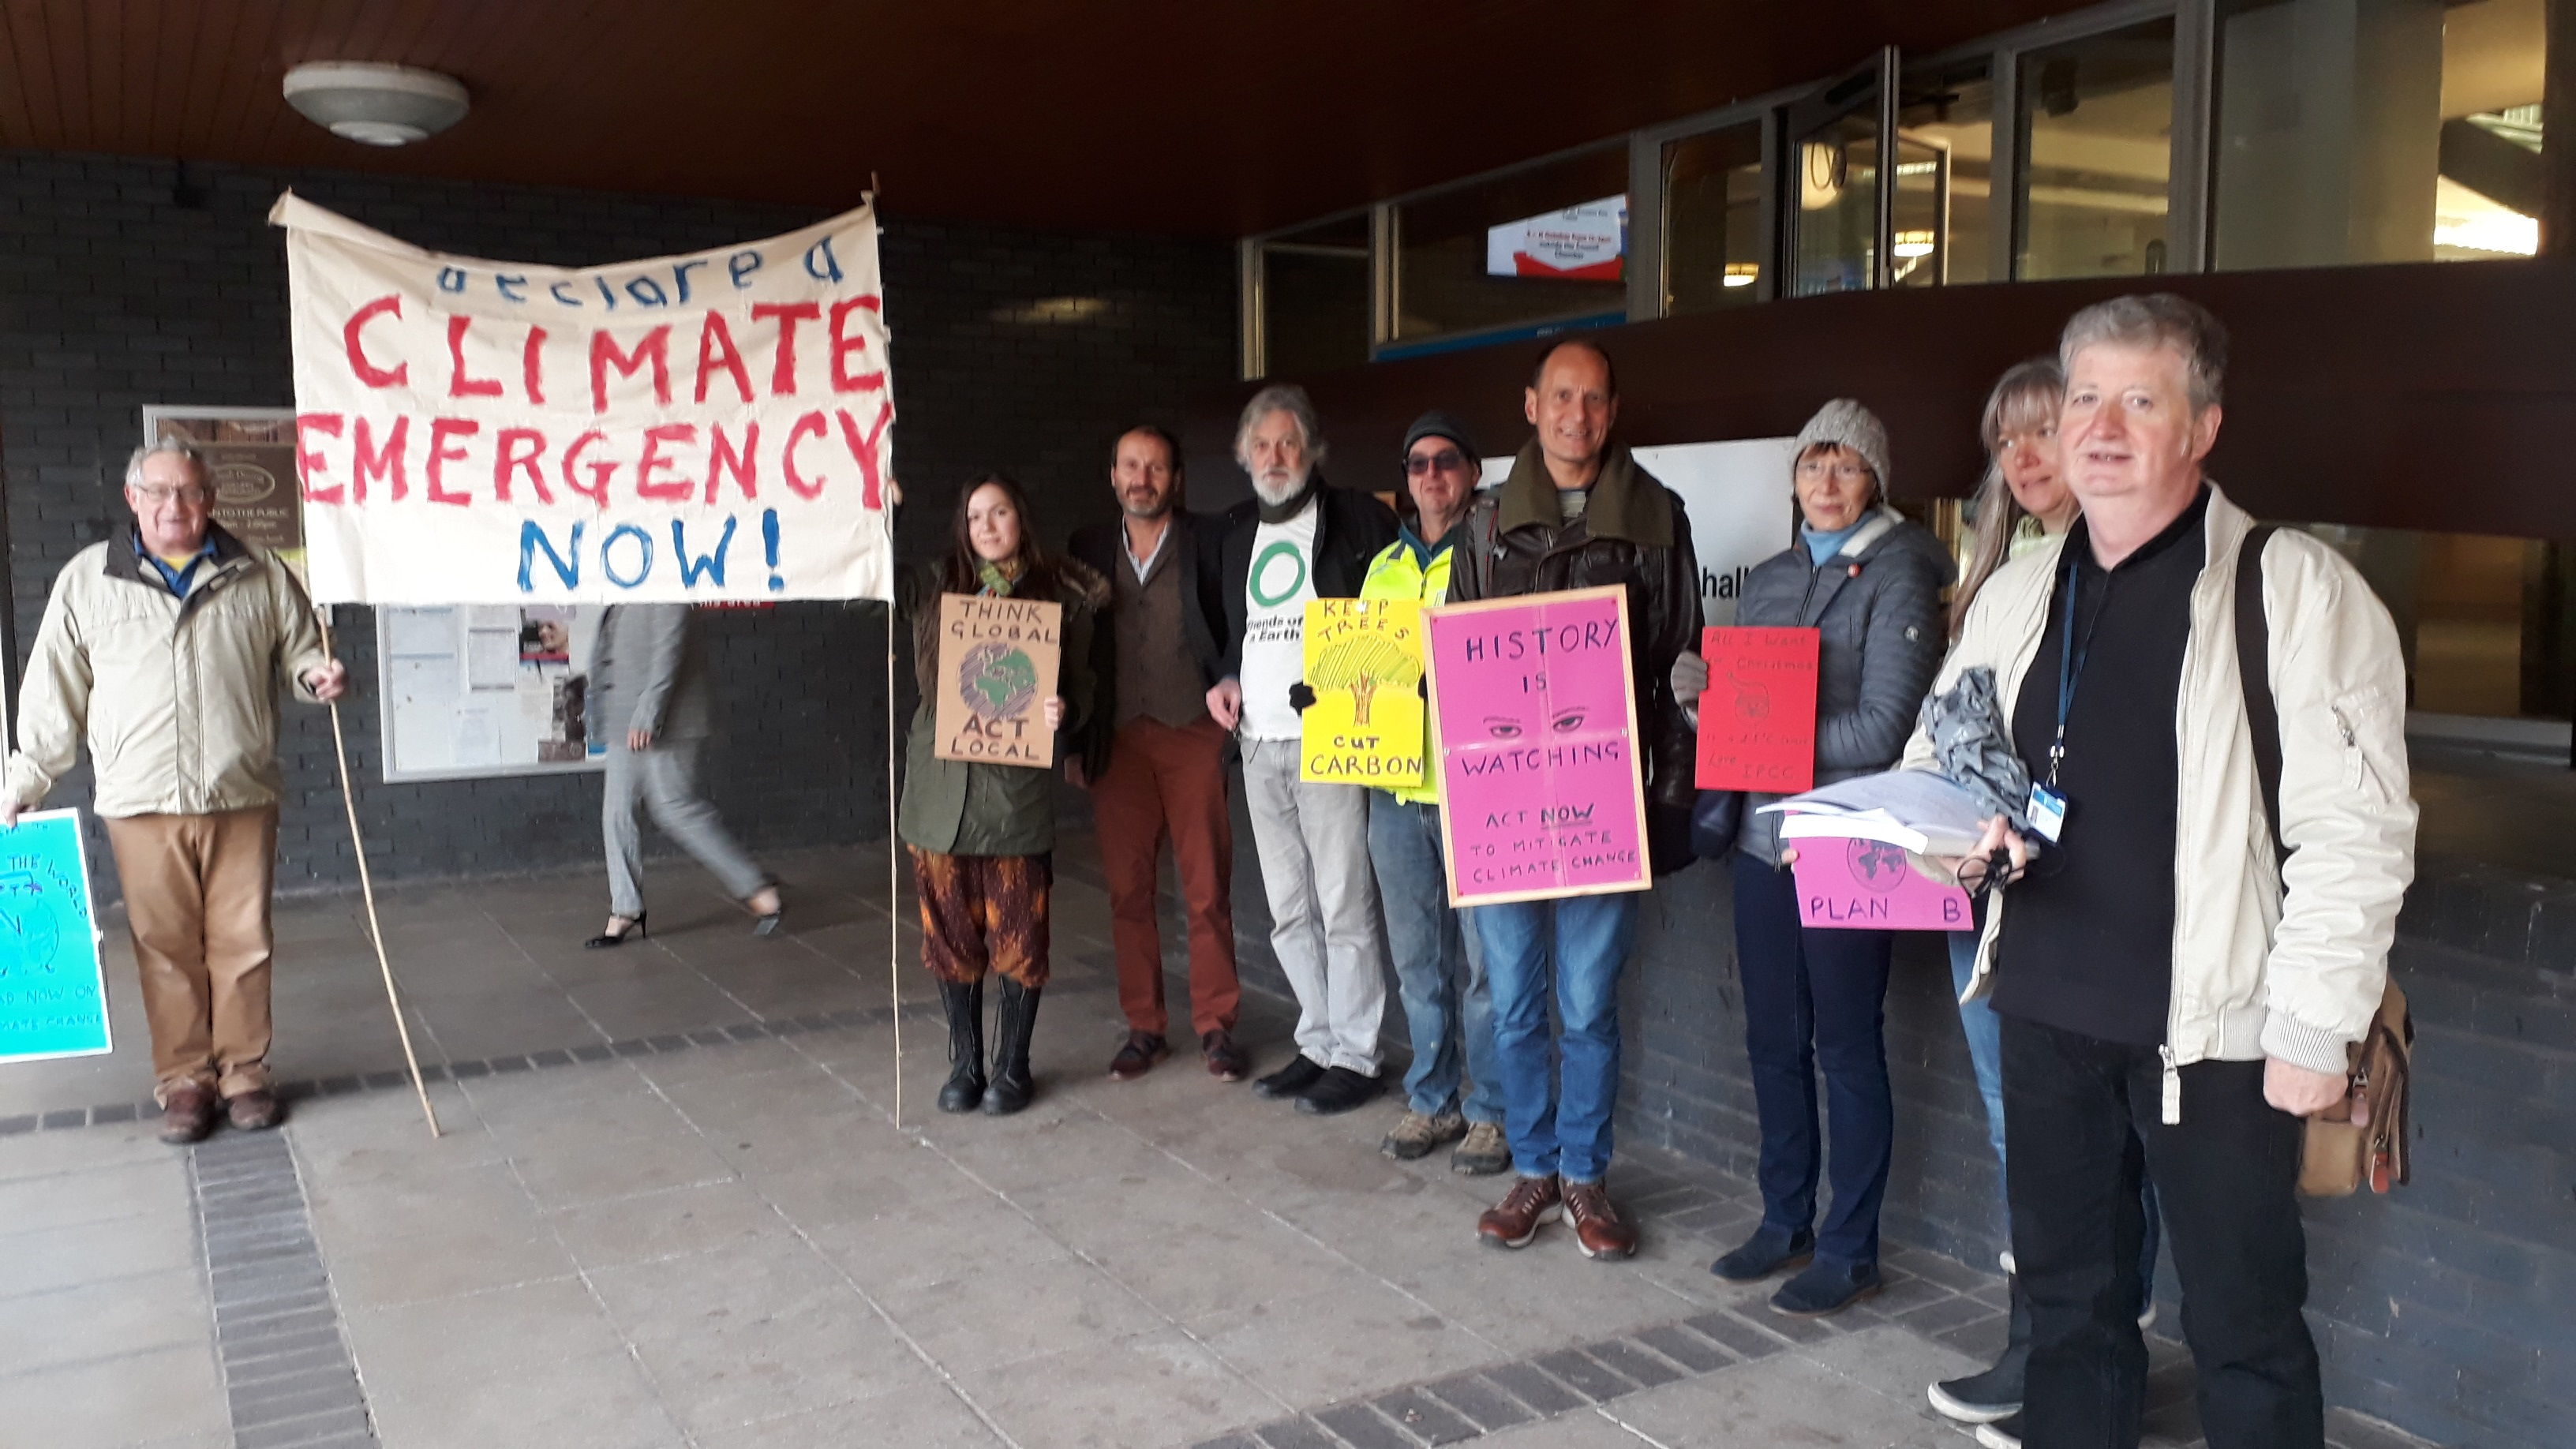 Climate change meetings in February – it's time we put the emergency into declarations of climate emergency